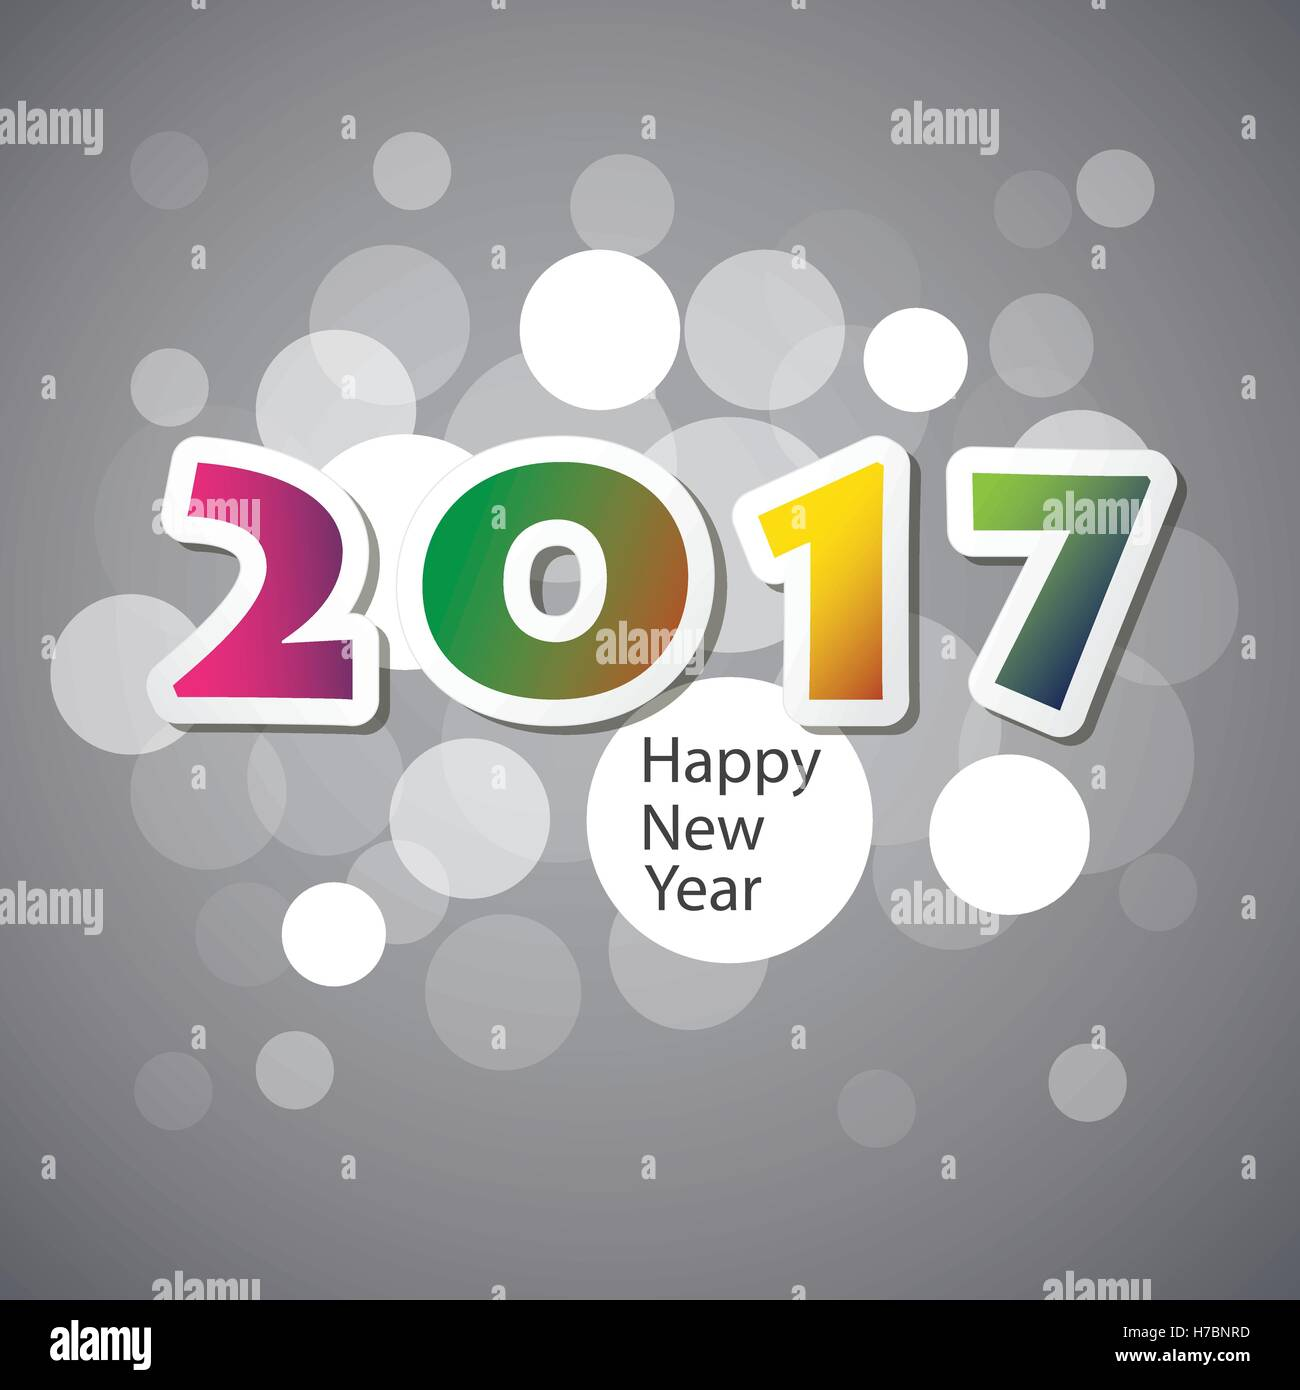 Best wishes colorful abstract modern style happy new year greeting best wishes colorful abstract modern style happy new year greeting card cover or background creative design template 2017 m4hsunfo